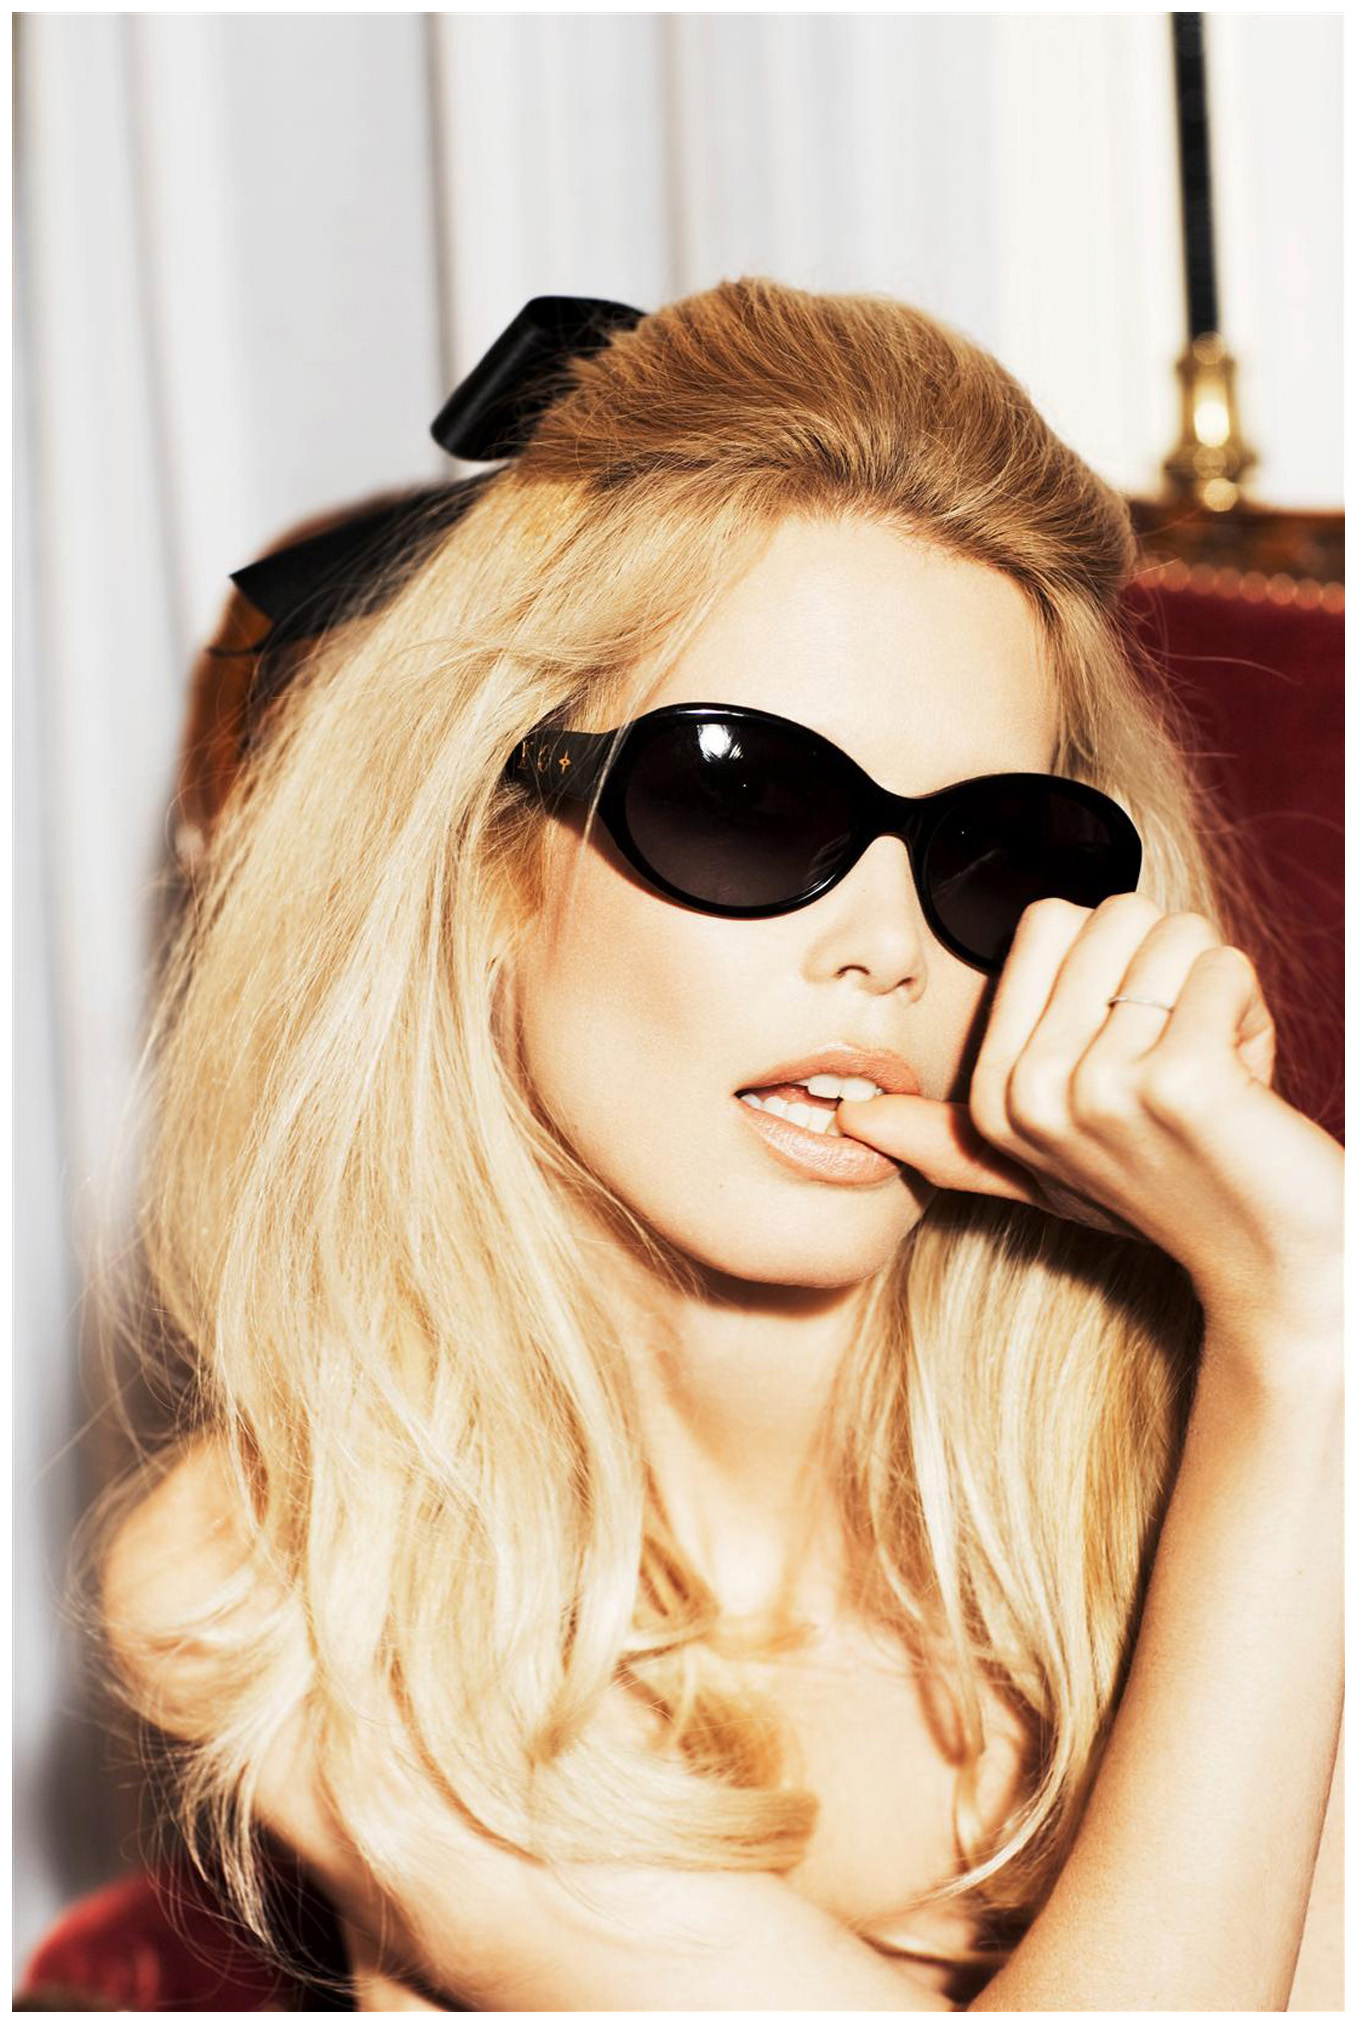 Hacked Claudia Schiffer nudes (93 foto and video), Ass, Cleavage, Instagram, braless 2017